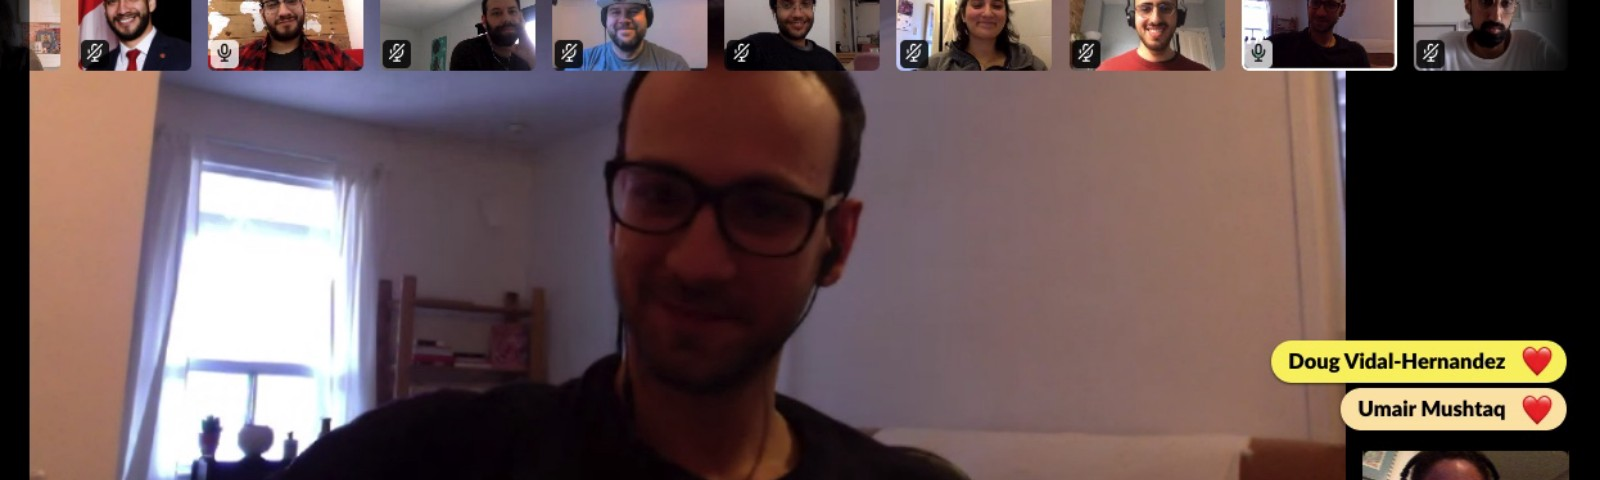 Our team's faces on screen during our remote retro meeting via Slack!